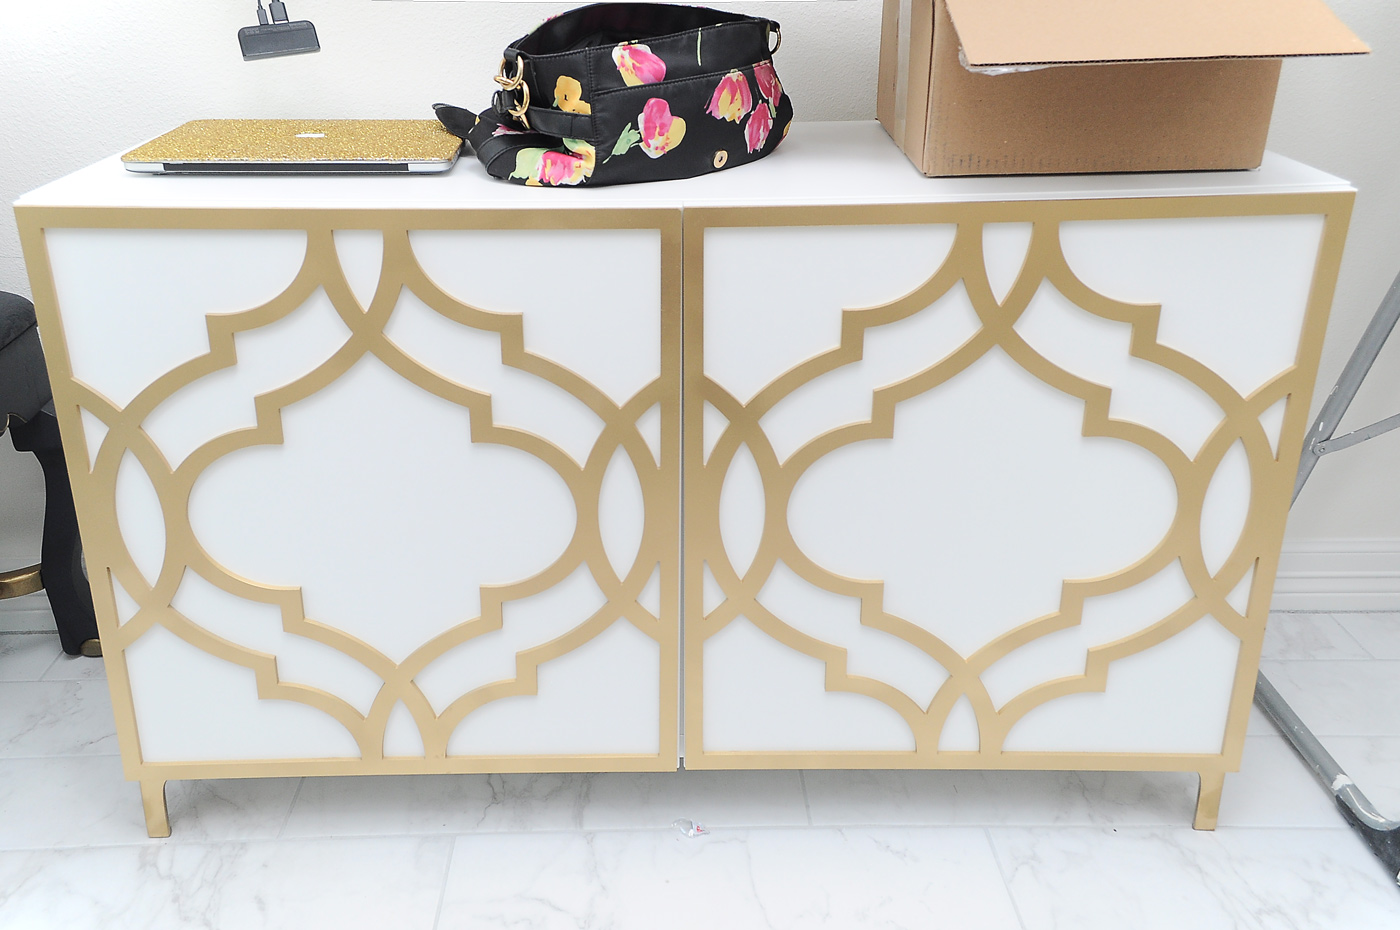 IKEA Besta unit with Khloe O'verlays- full DIY tutorial at monicawantsit.com #ikeahacks #ikeahack #besta